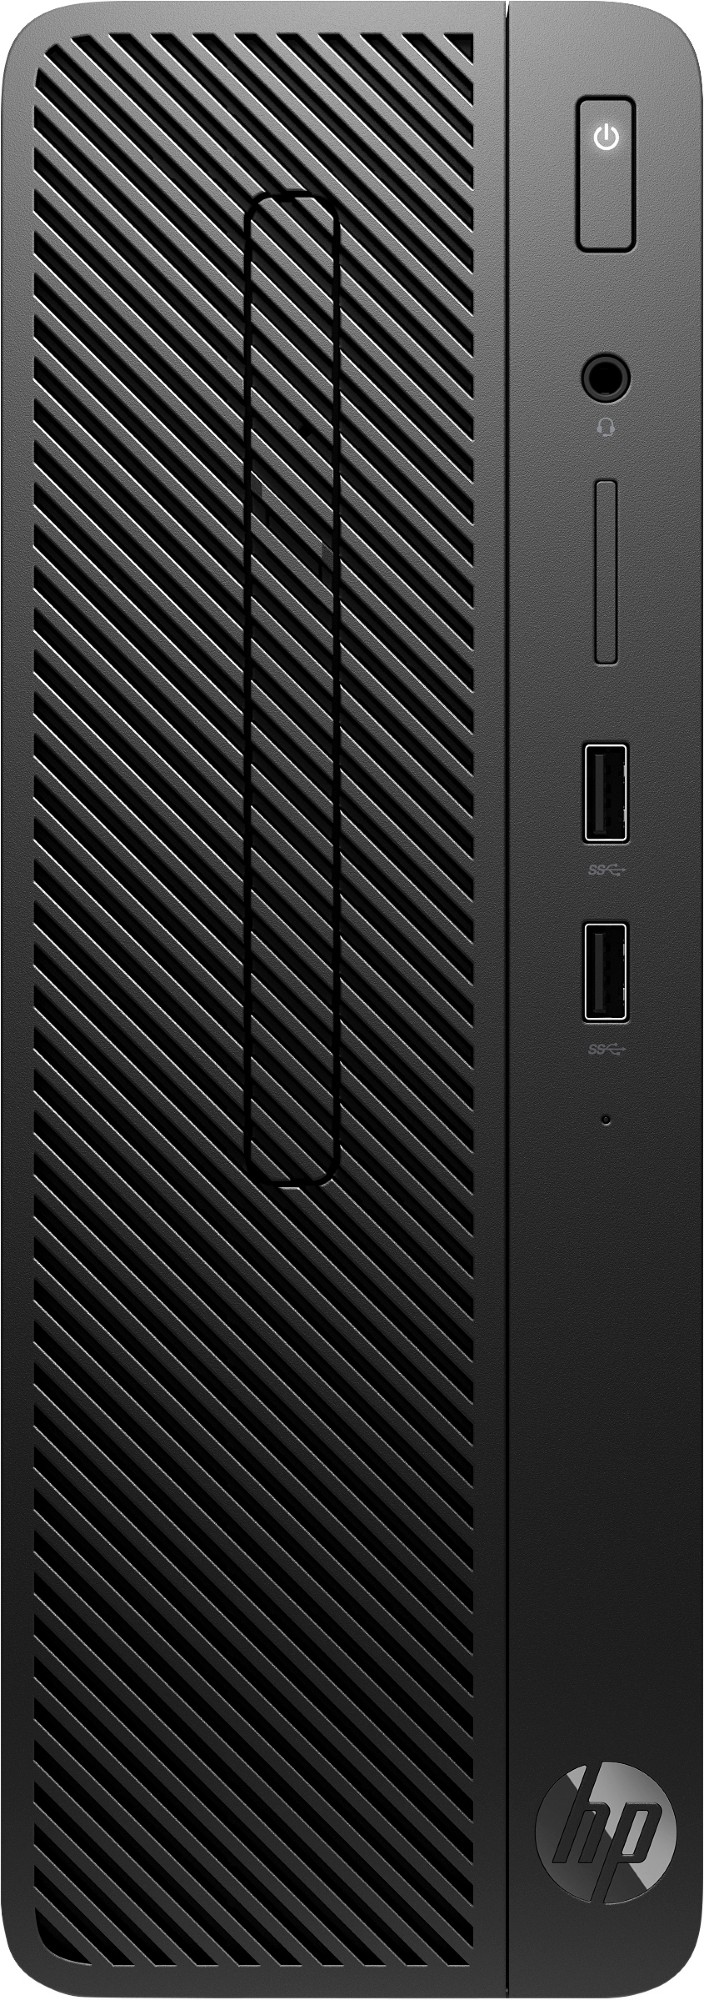 HP 3ZE00EA#ABU 290 MICROTOWER PC G1 3.6GHZ I3-8100 SFF BLACK